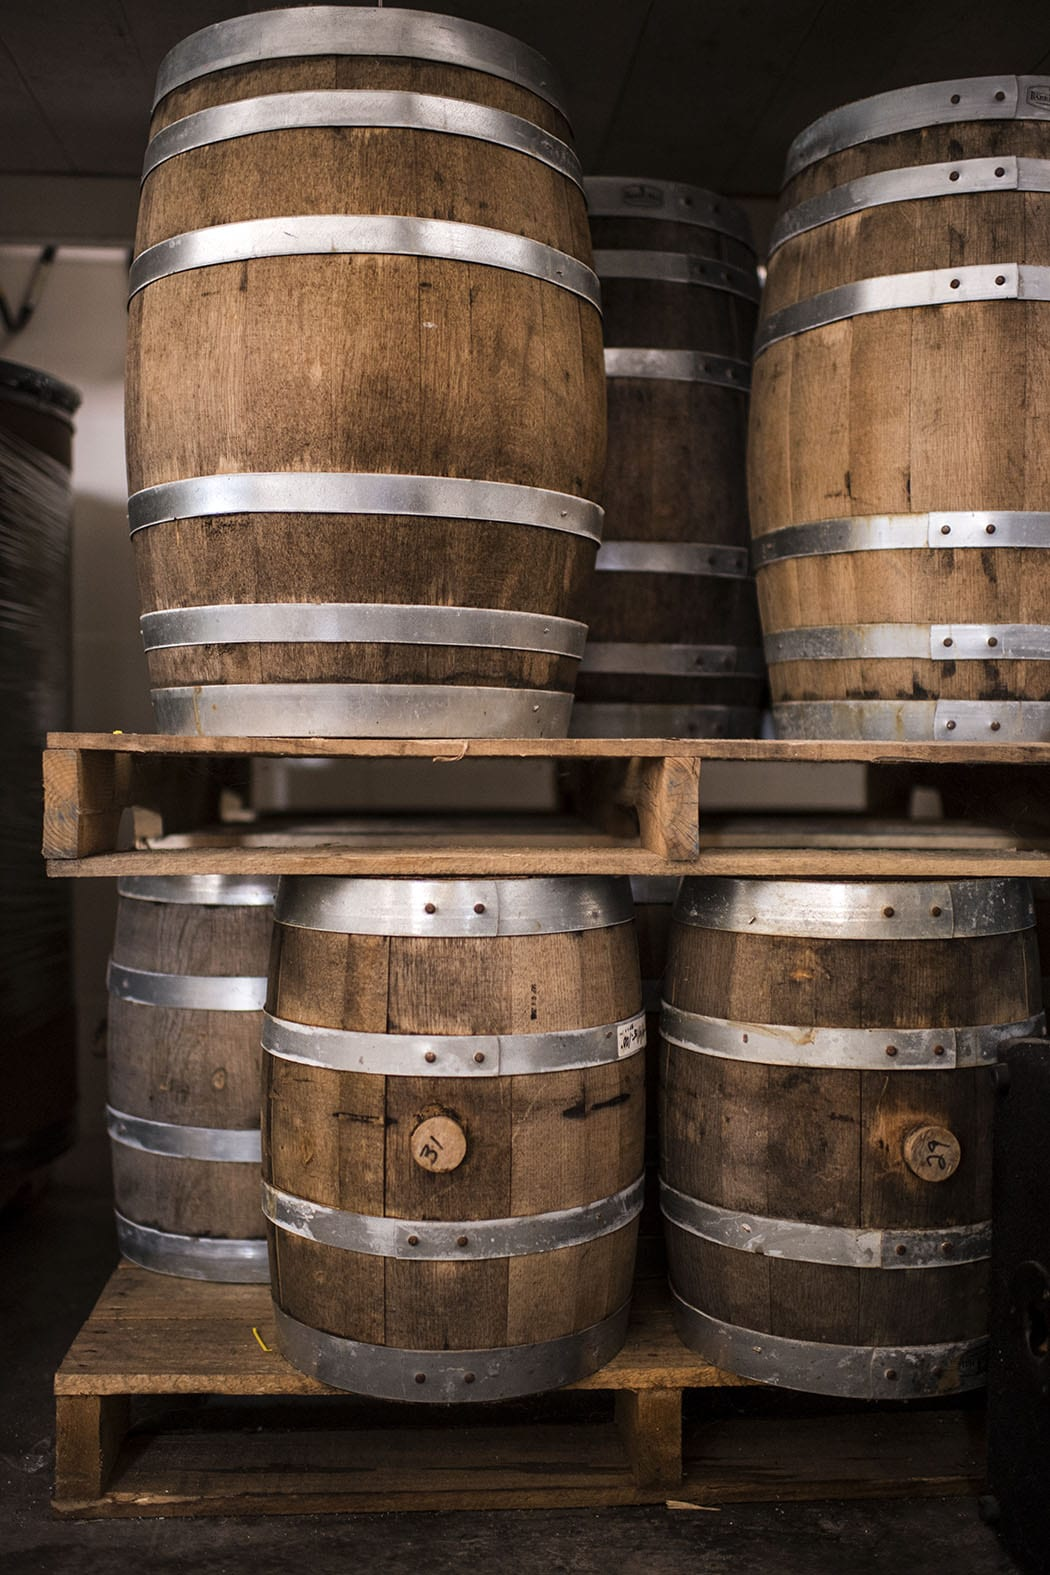 Wood aging and barrel-fermentation are a few of the special things happening on the beer side of the operations.